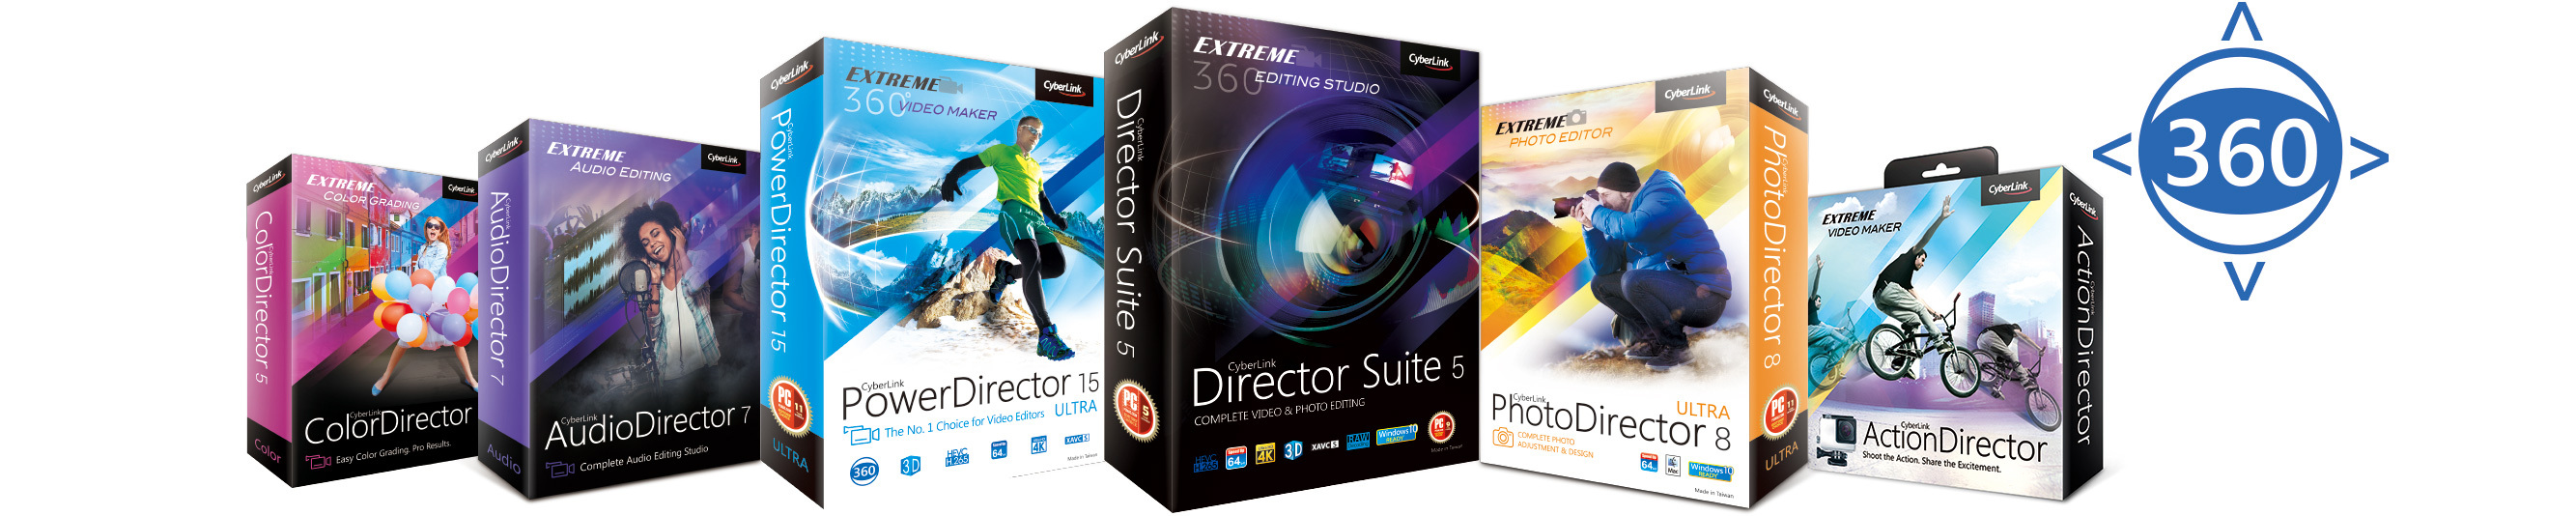 CyberLink Introduces PowerDirector 15 and Enables Complete Media